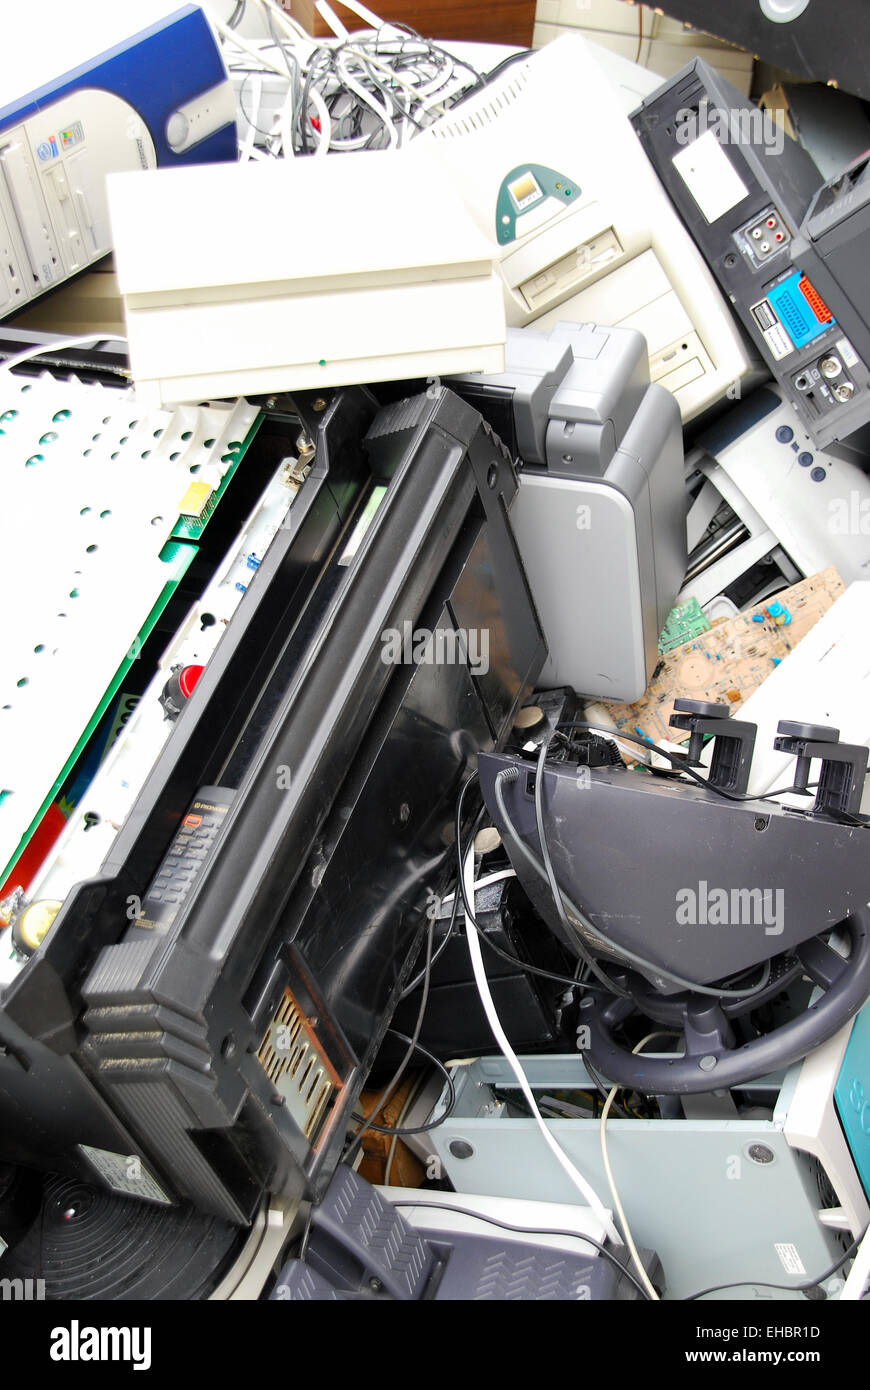 Recycling 080716 7 Stock Photo